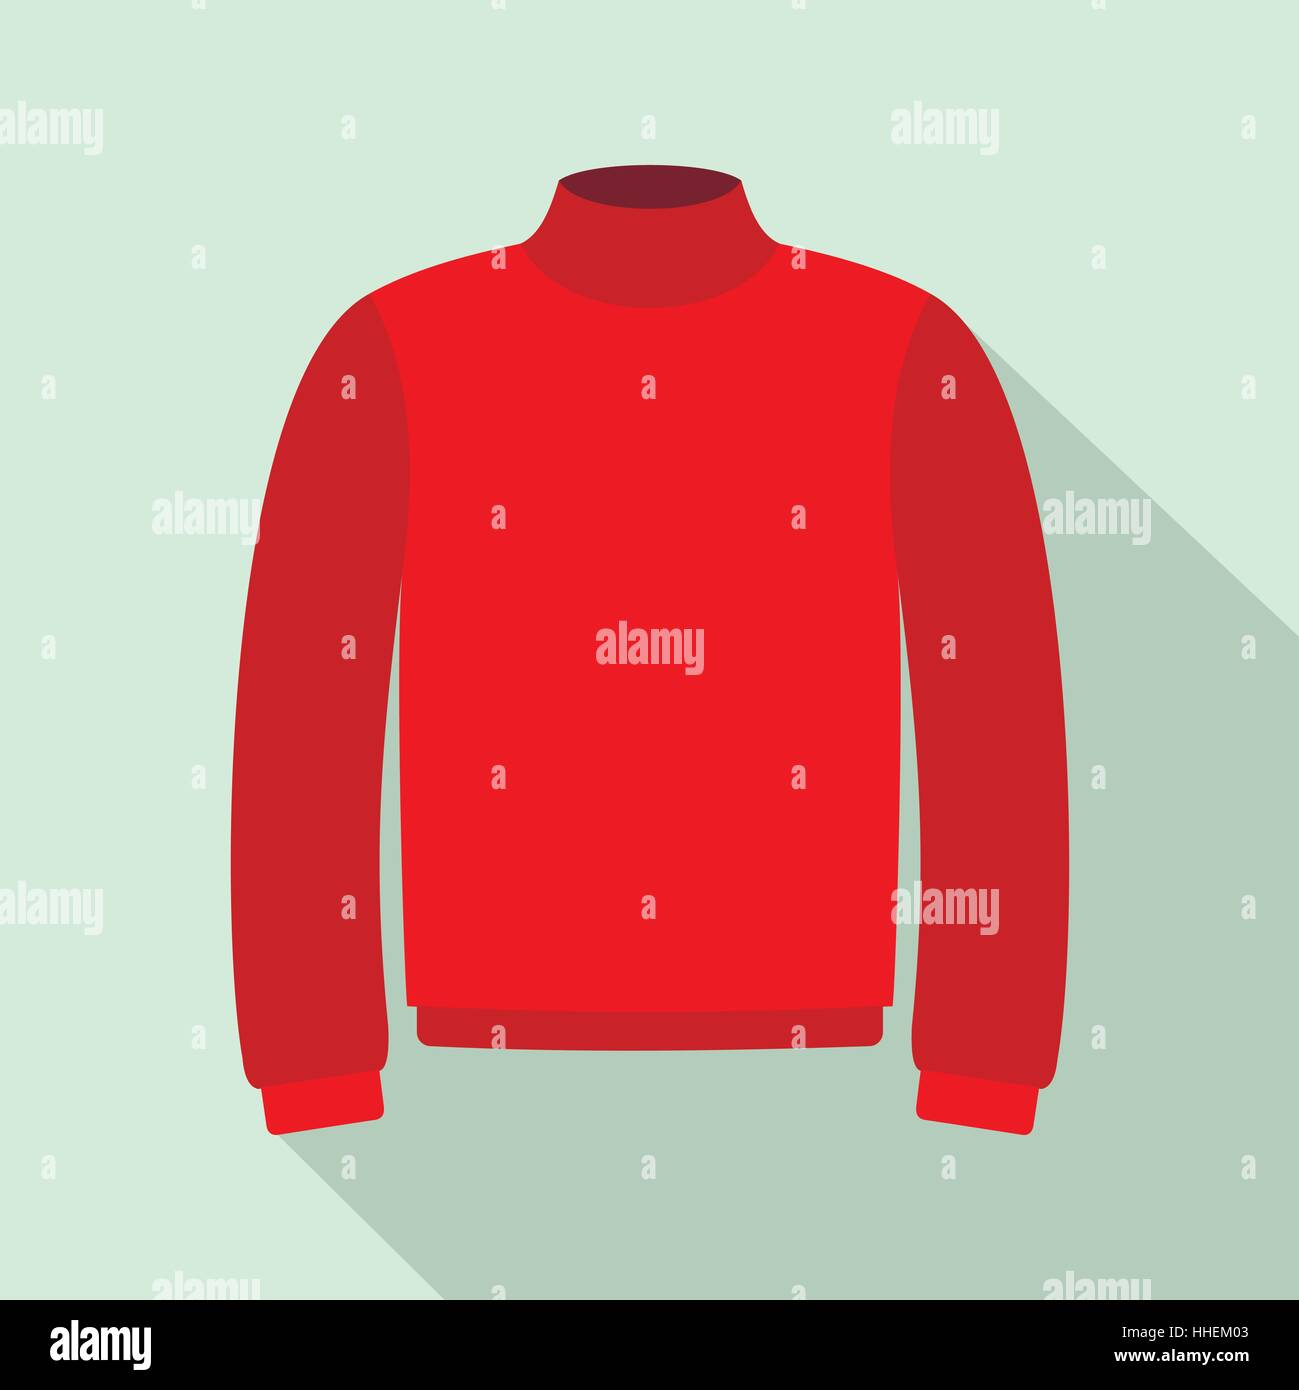 Red warm sweater icon, flat style - Stock Vector